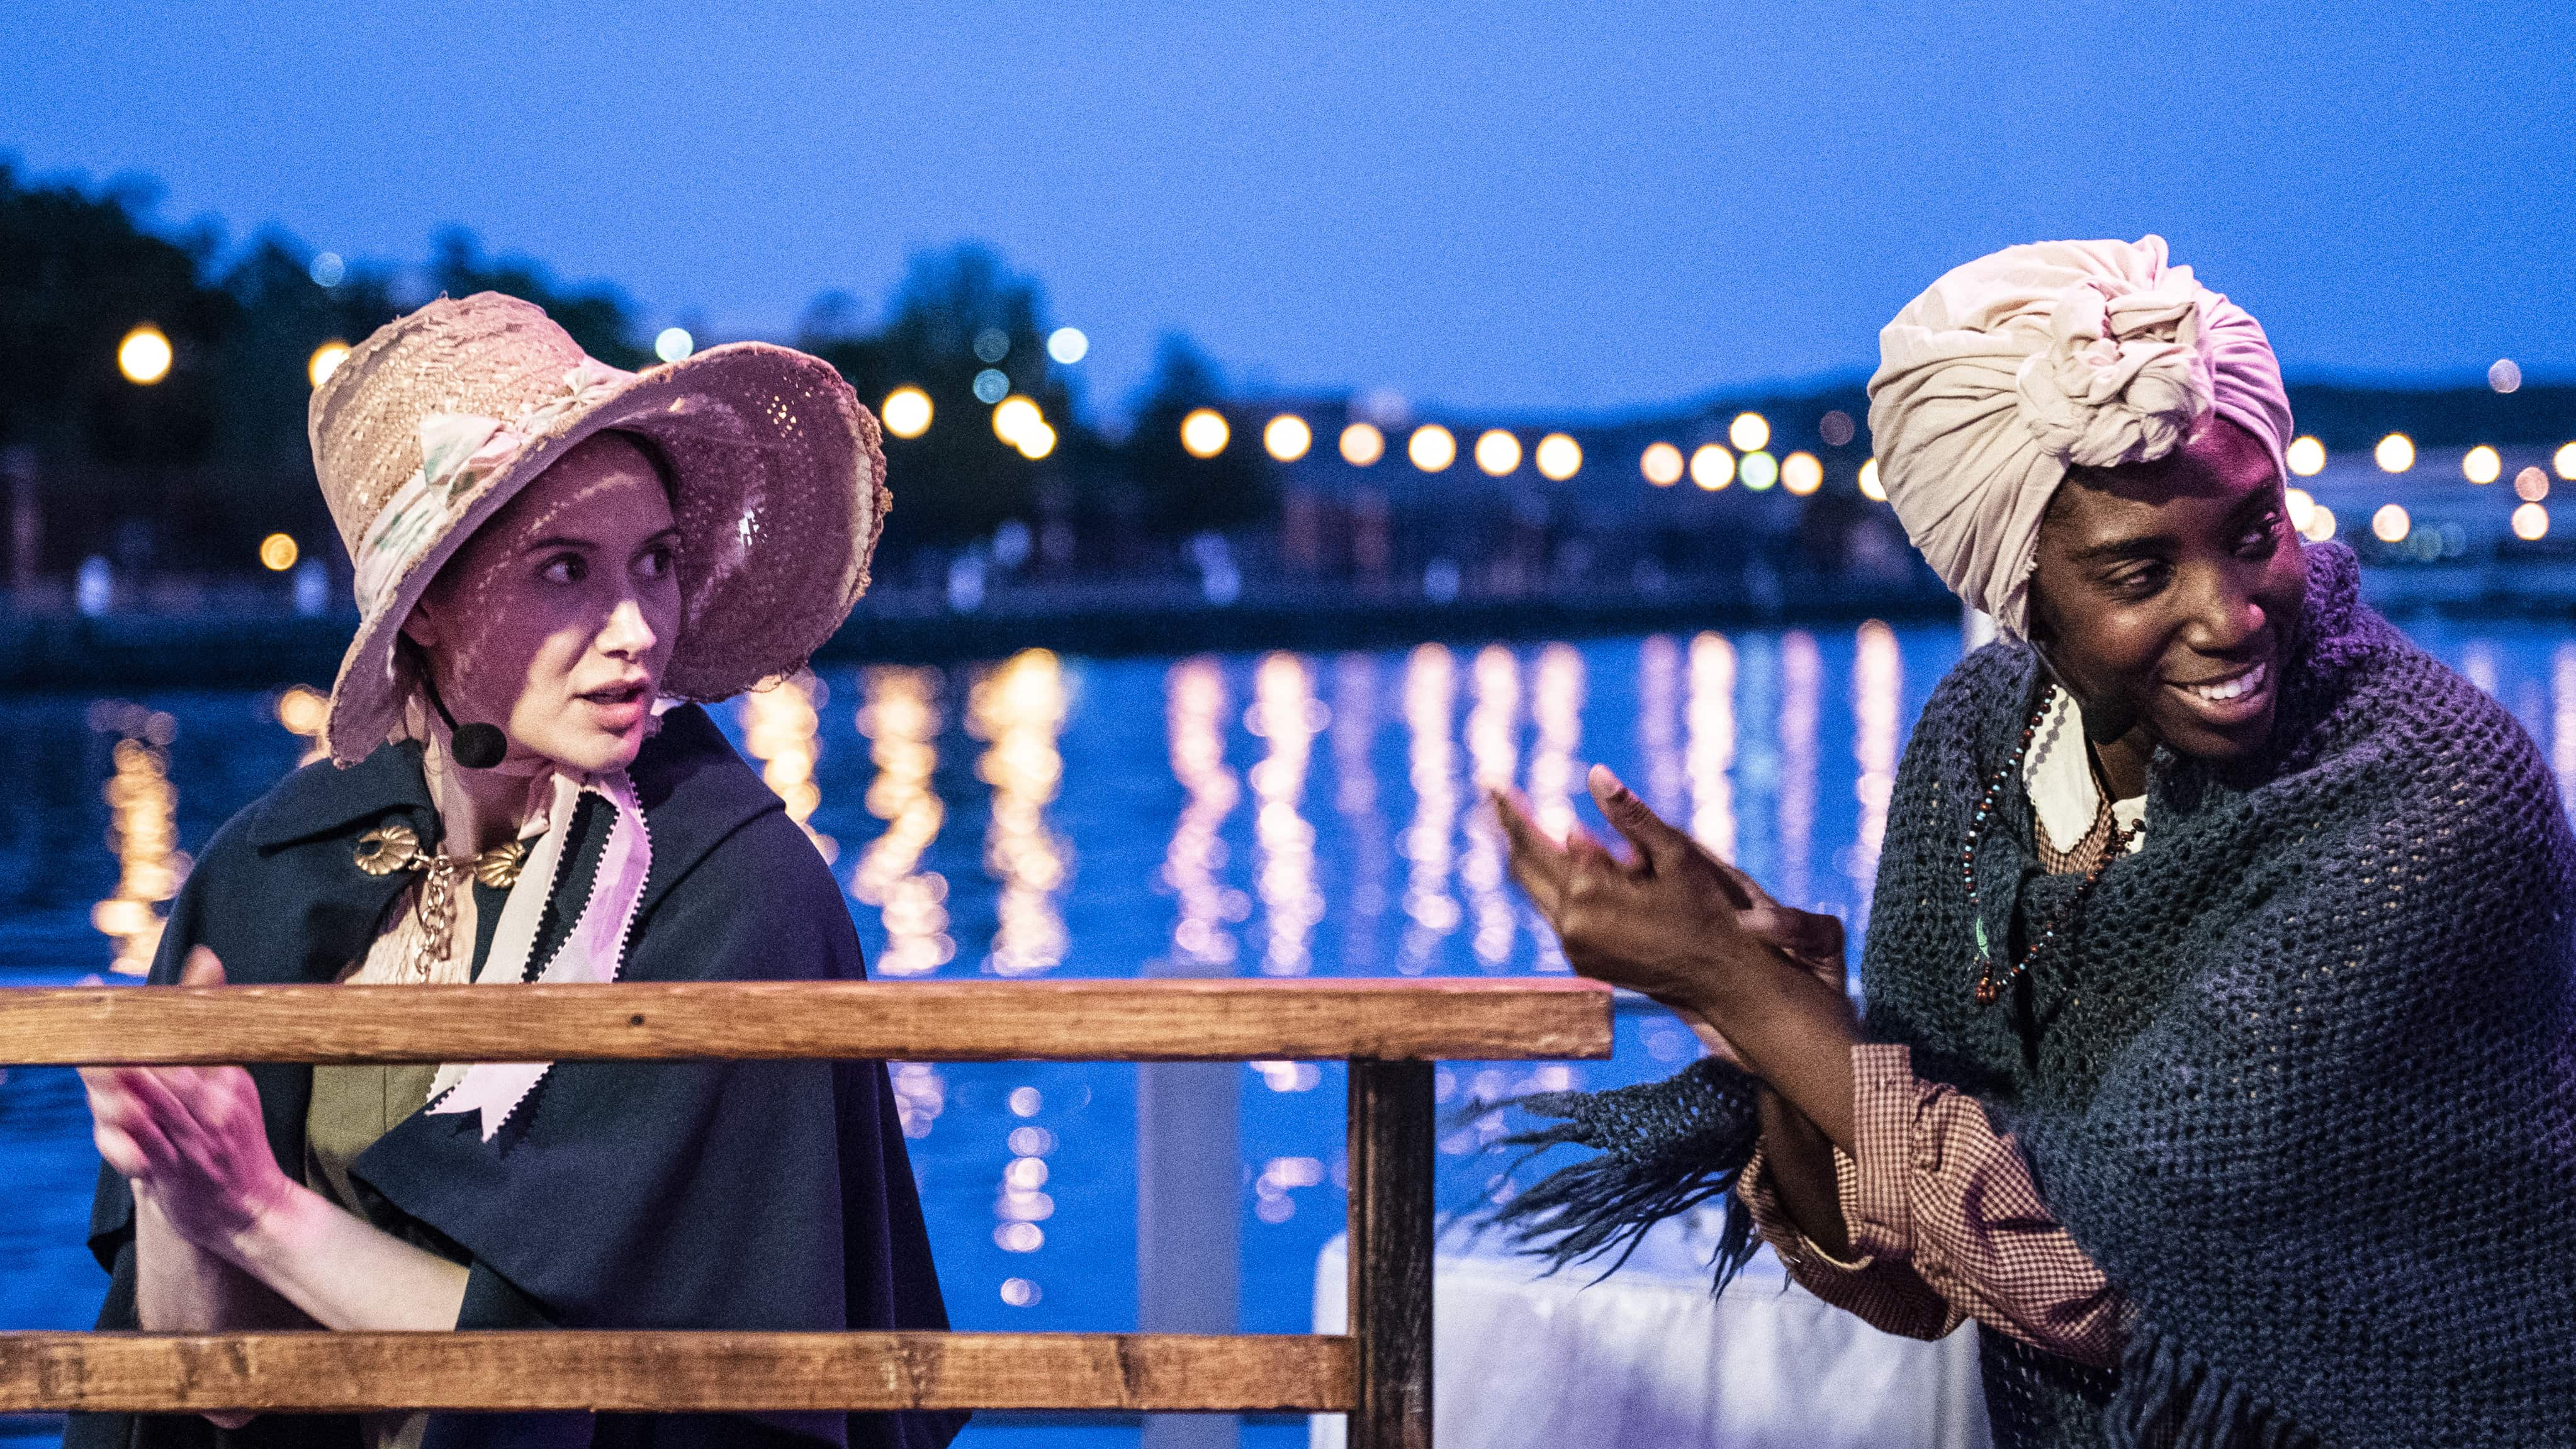 Jenny Donovan and Tiffany Byrd in The Frederick Douglass Project. Photo by Teresa Castracane.